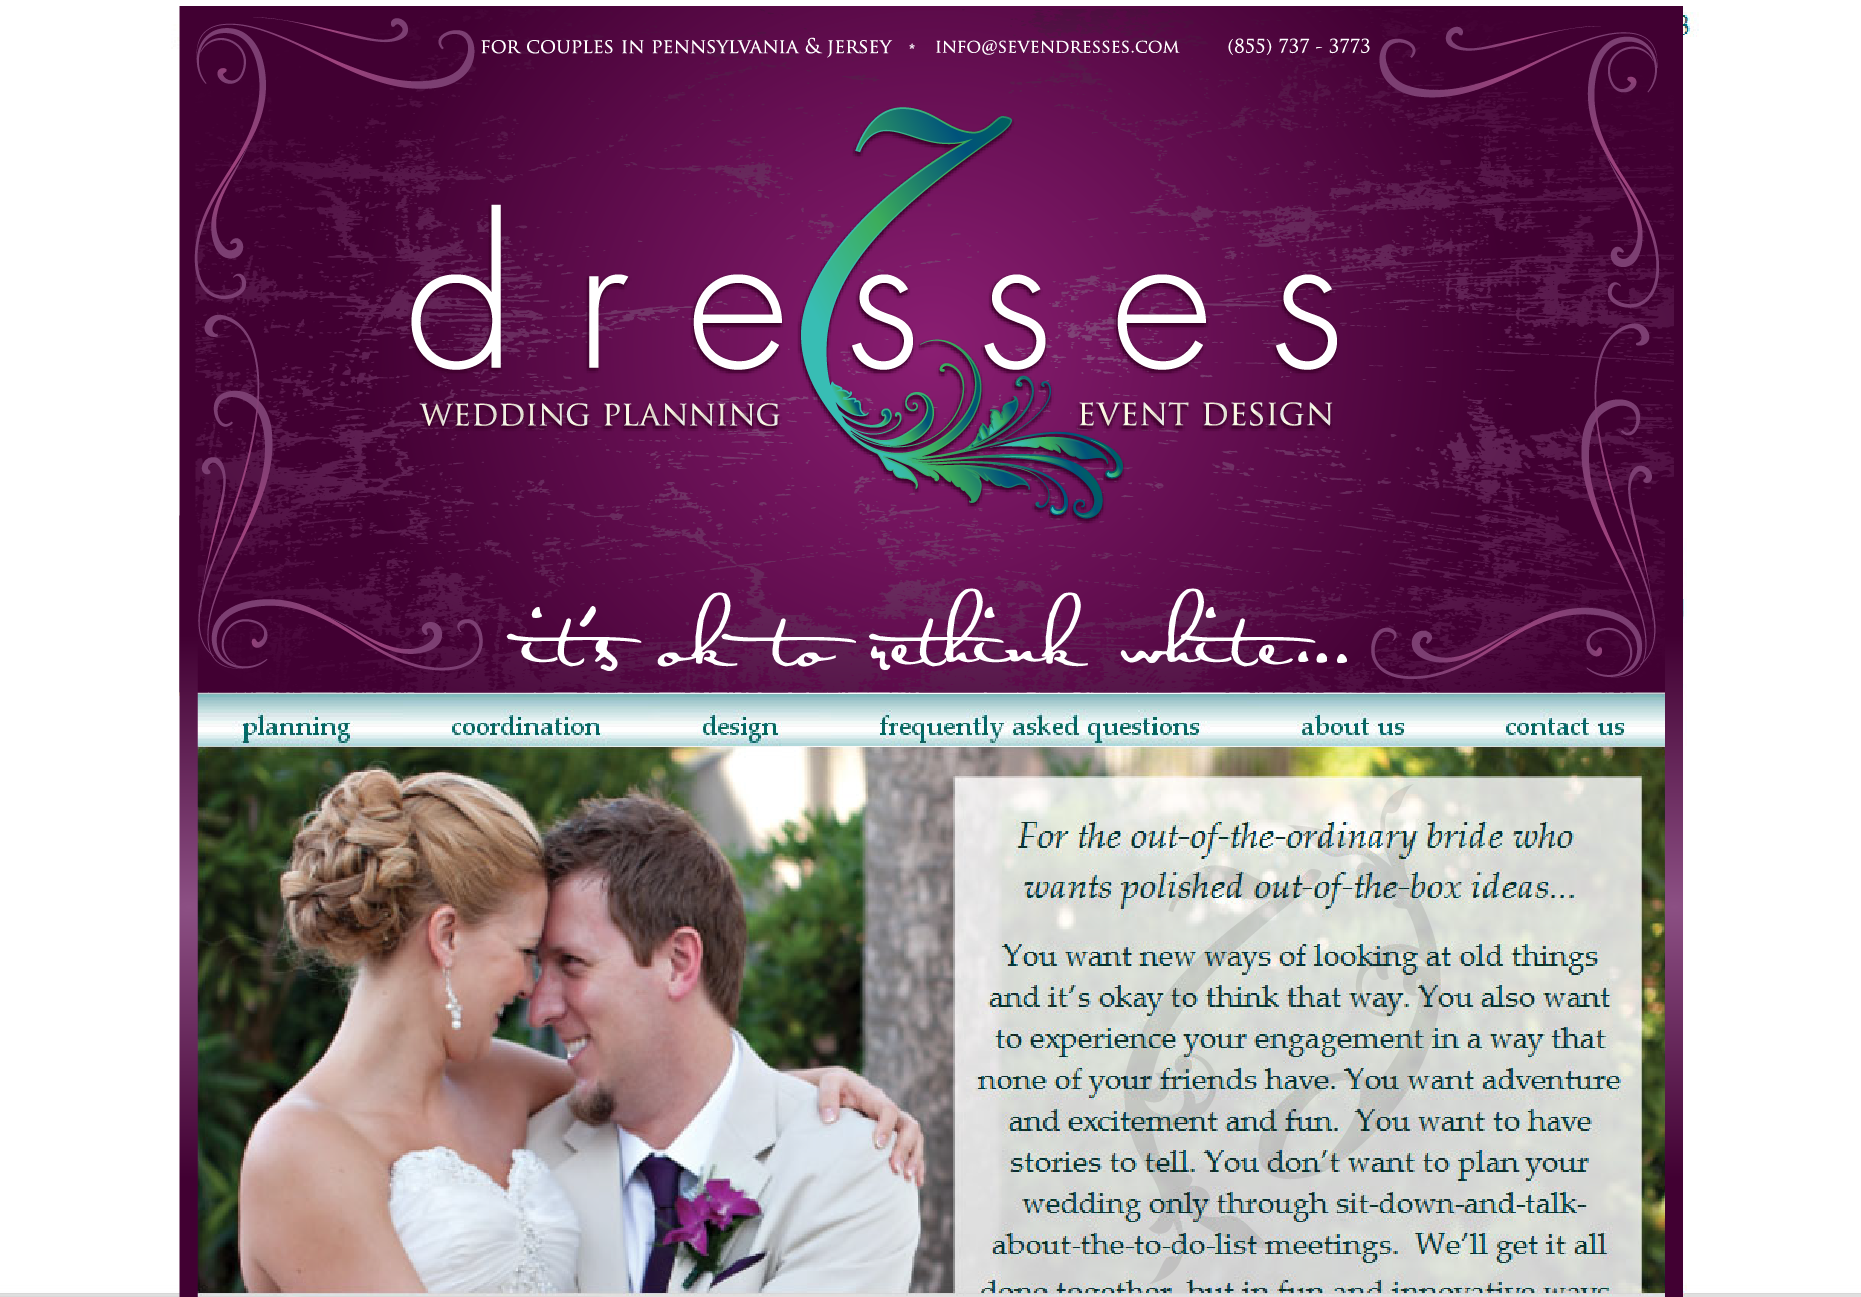 New logo wanted for Seven Dresses Wedding Planning & Design